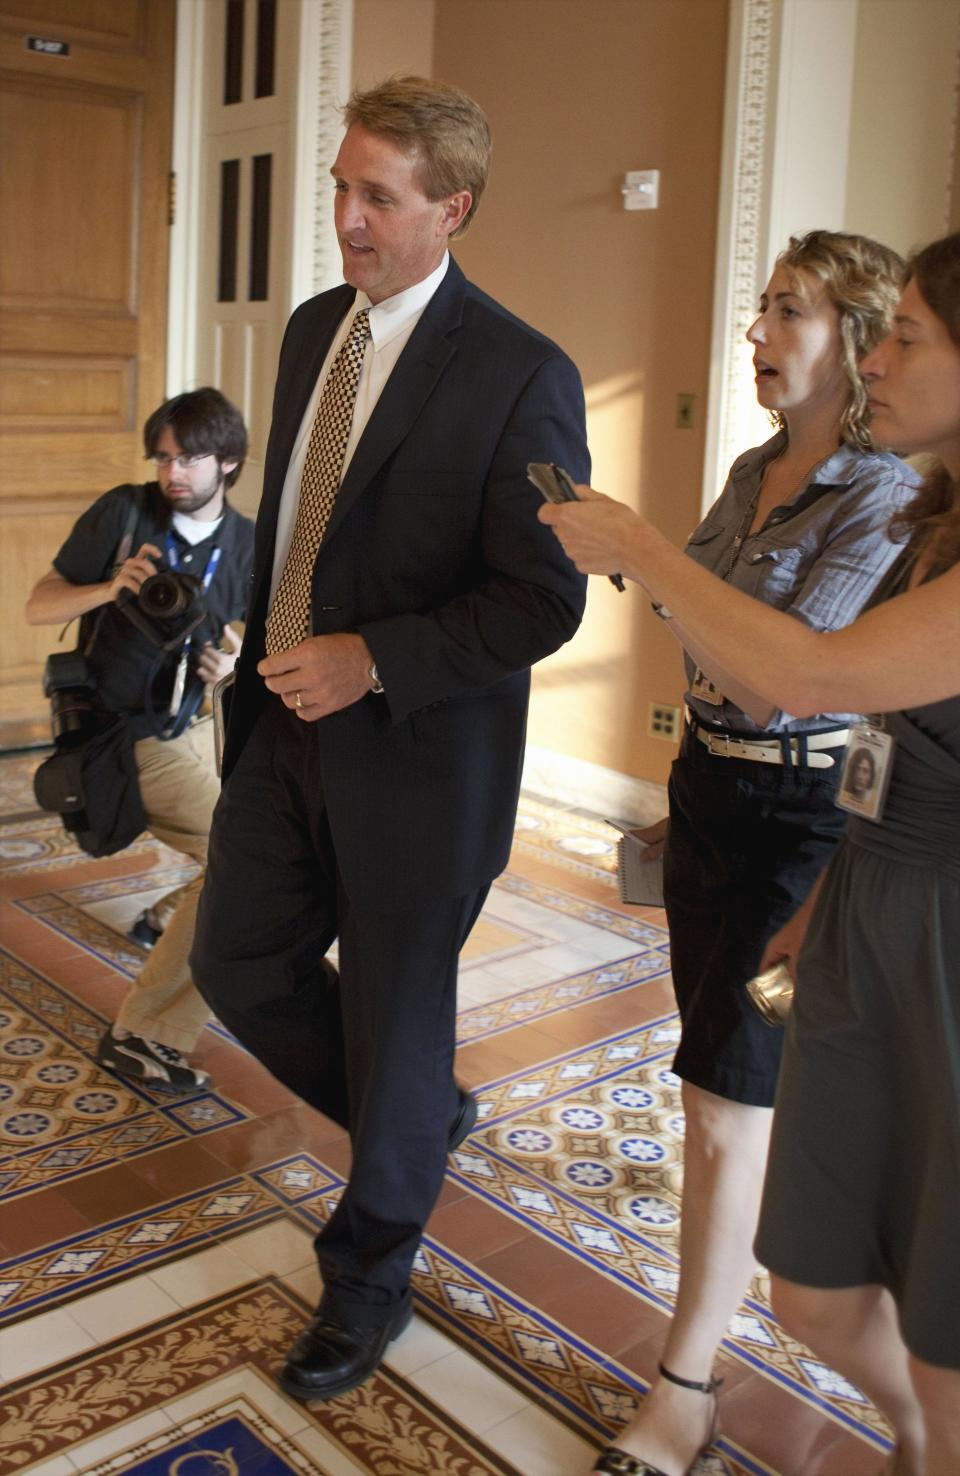 Rep. Jeff Flake, R-Ariz. speaks to reporters on Capitol Hill in Washington, Friday, July 29, 2011, after the Republican-controlled House approved emergency legislation Friday night to prevent a threatened government default and bundled it off to swift and certain defeat in the Senate. (AP Photo/Harry Hamburg)